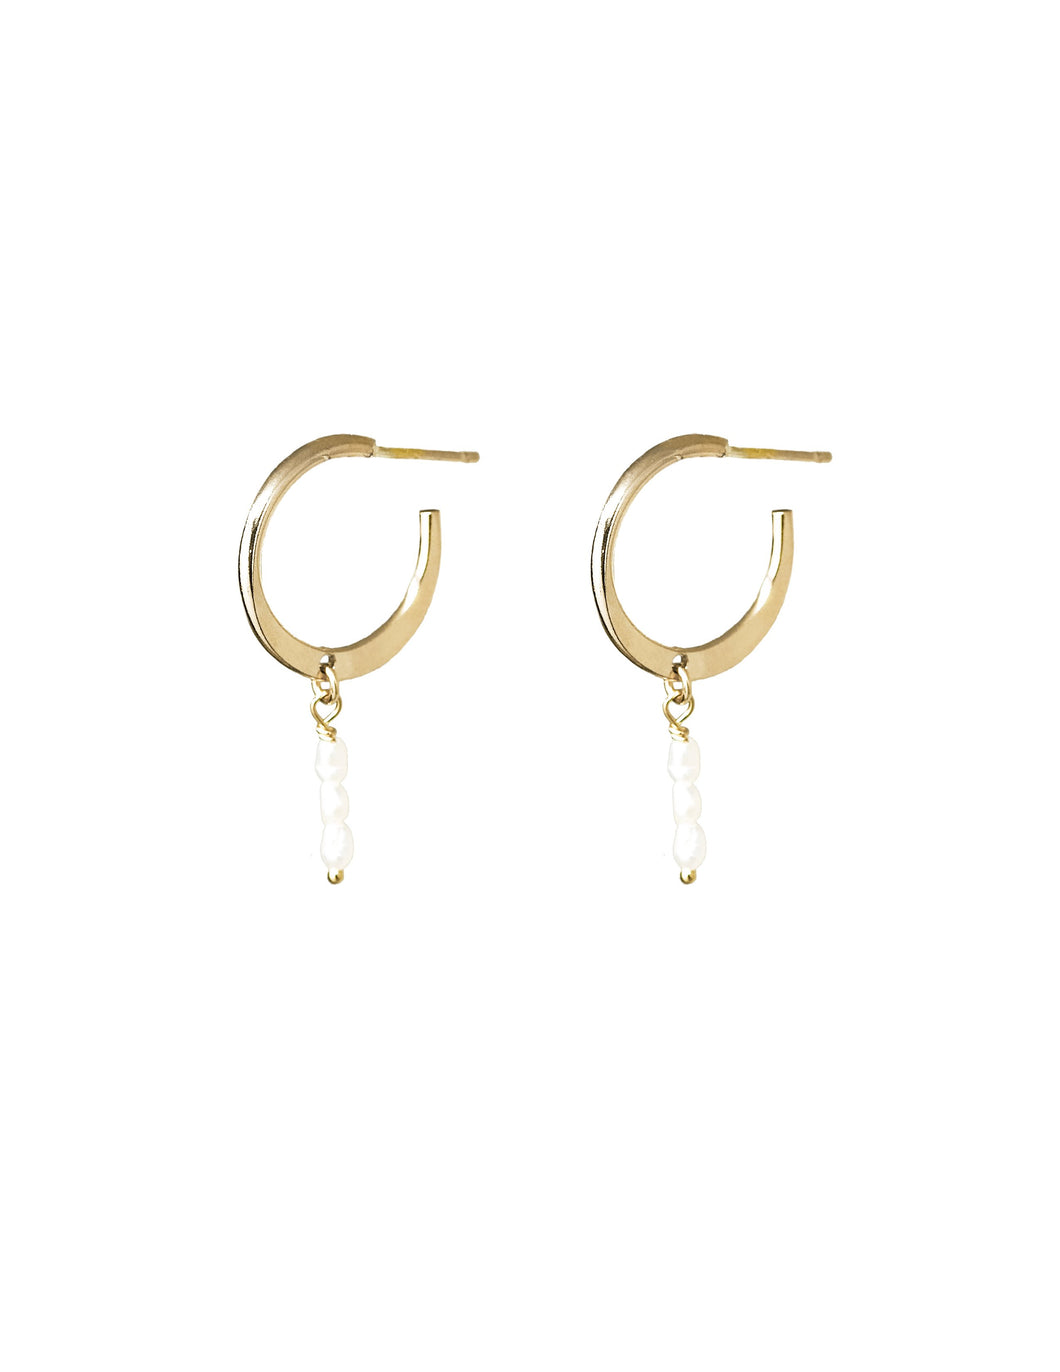 Clove Hoop Earrings - Front and Company: Gifts